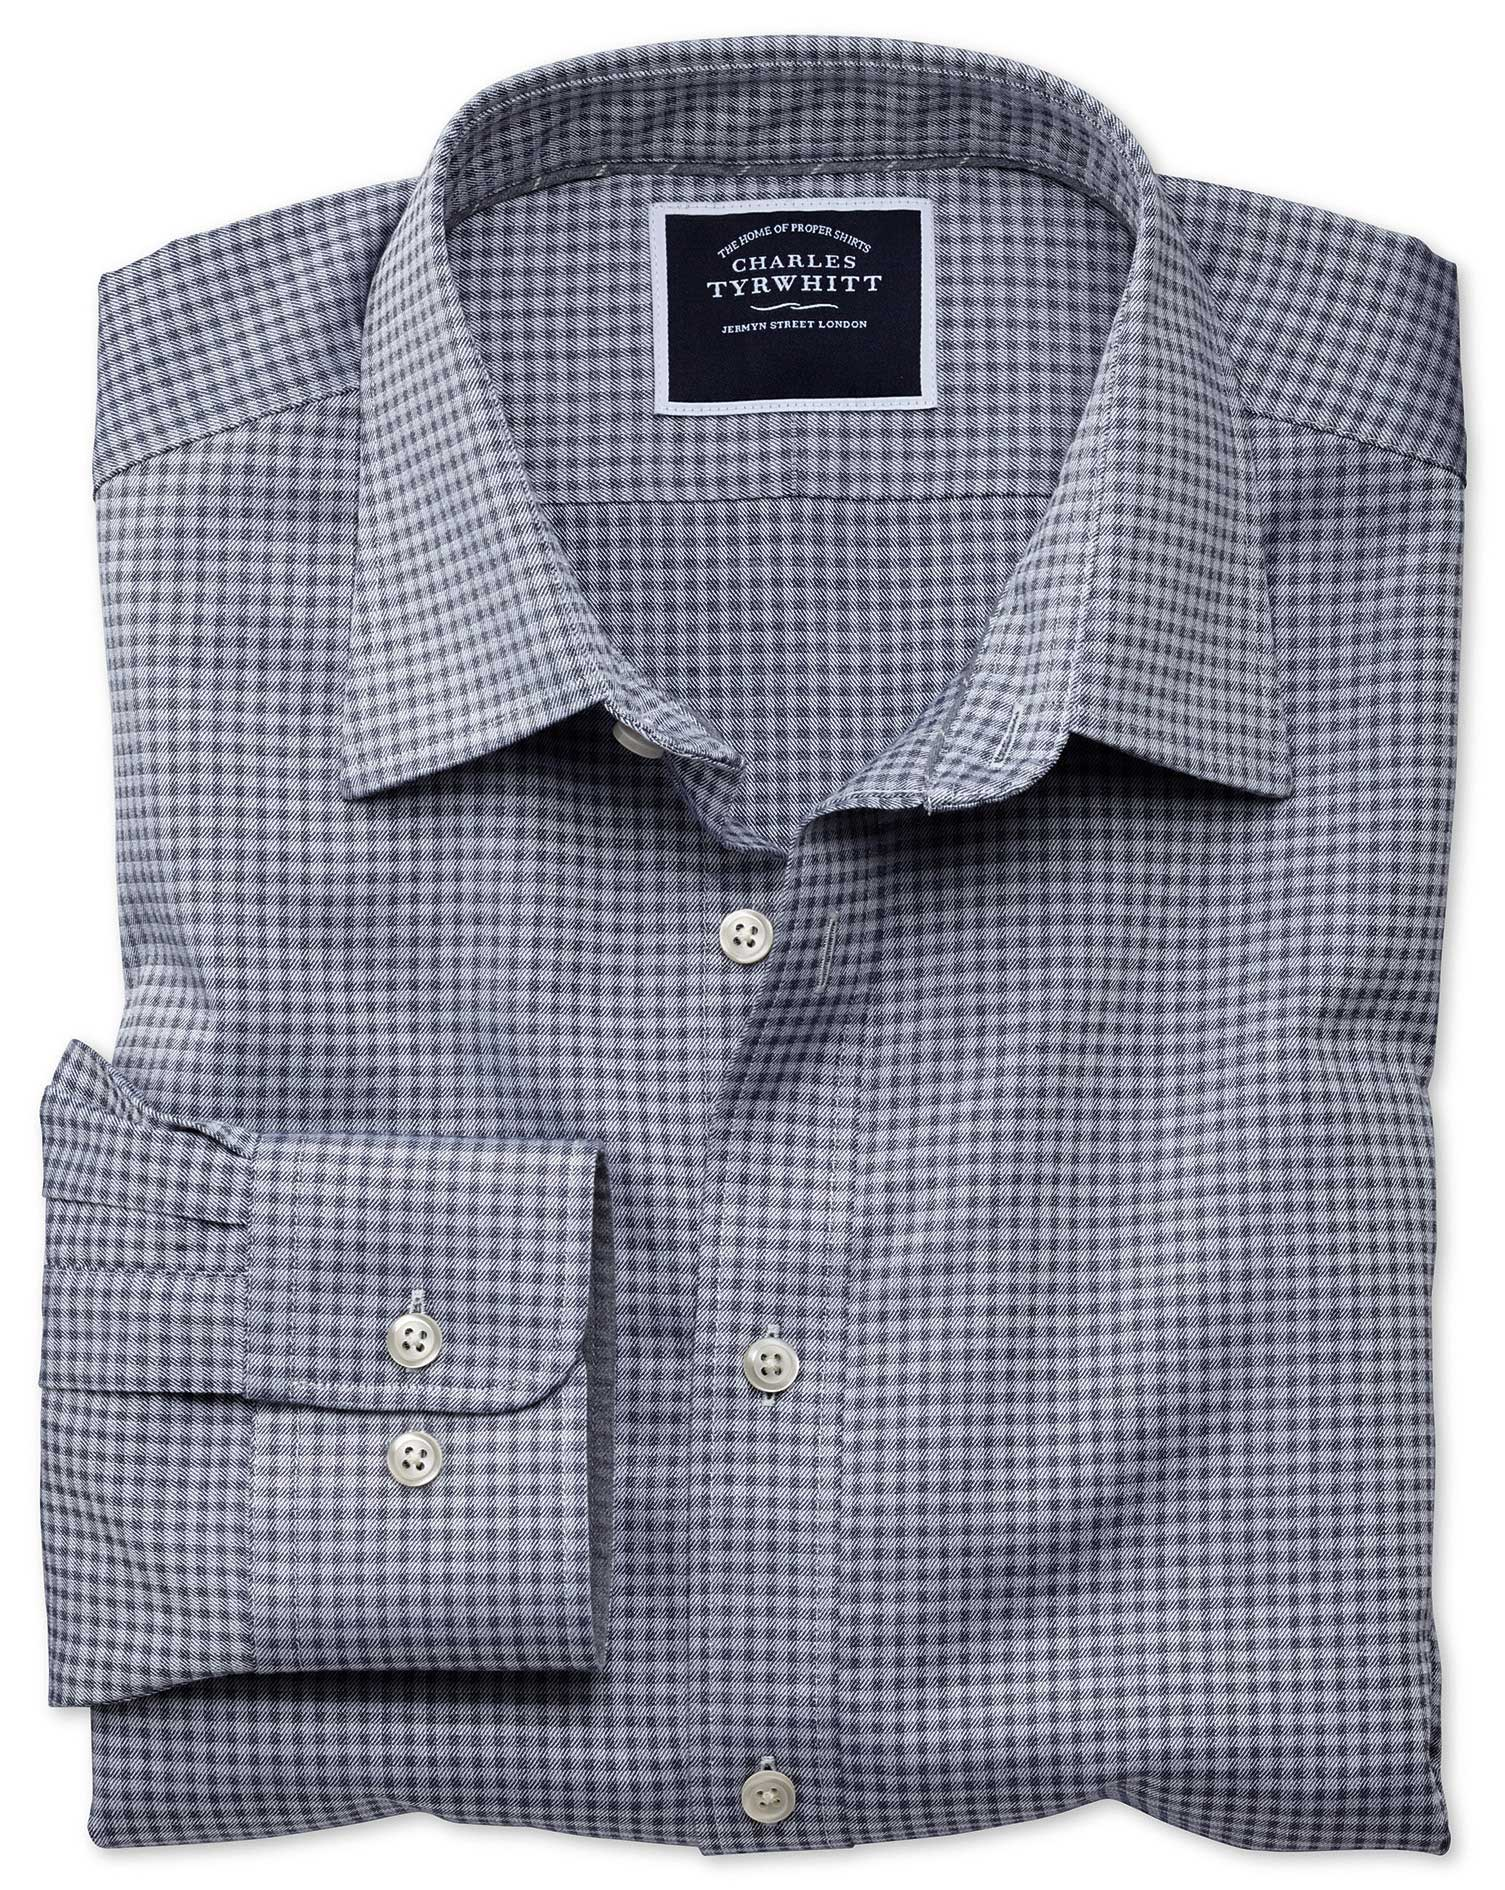 Extra Slim Fit Blue and Grey Check Soft Textured Cotton Shirt Single Cuff Size Large by Charles Tyrw